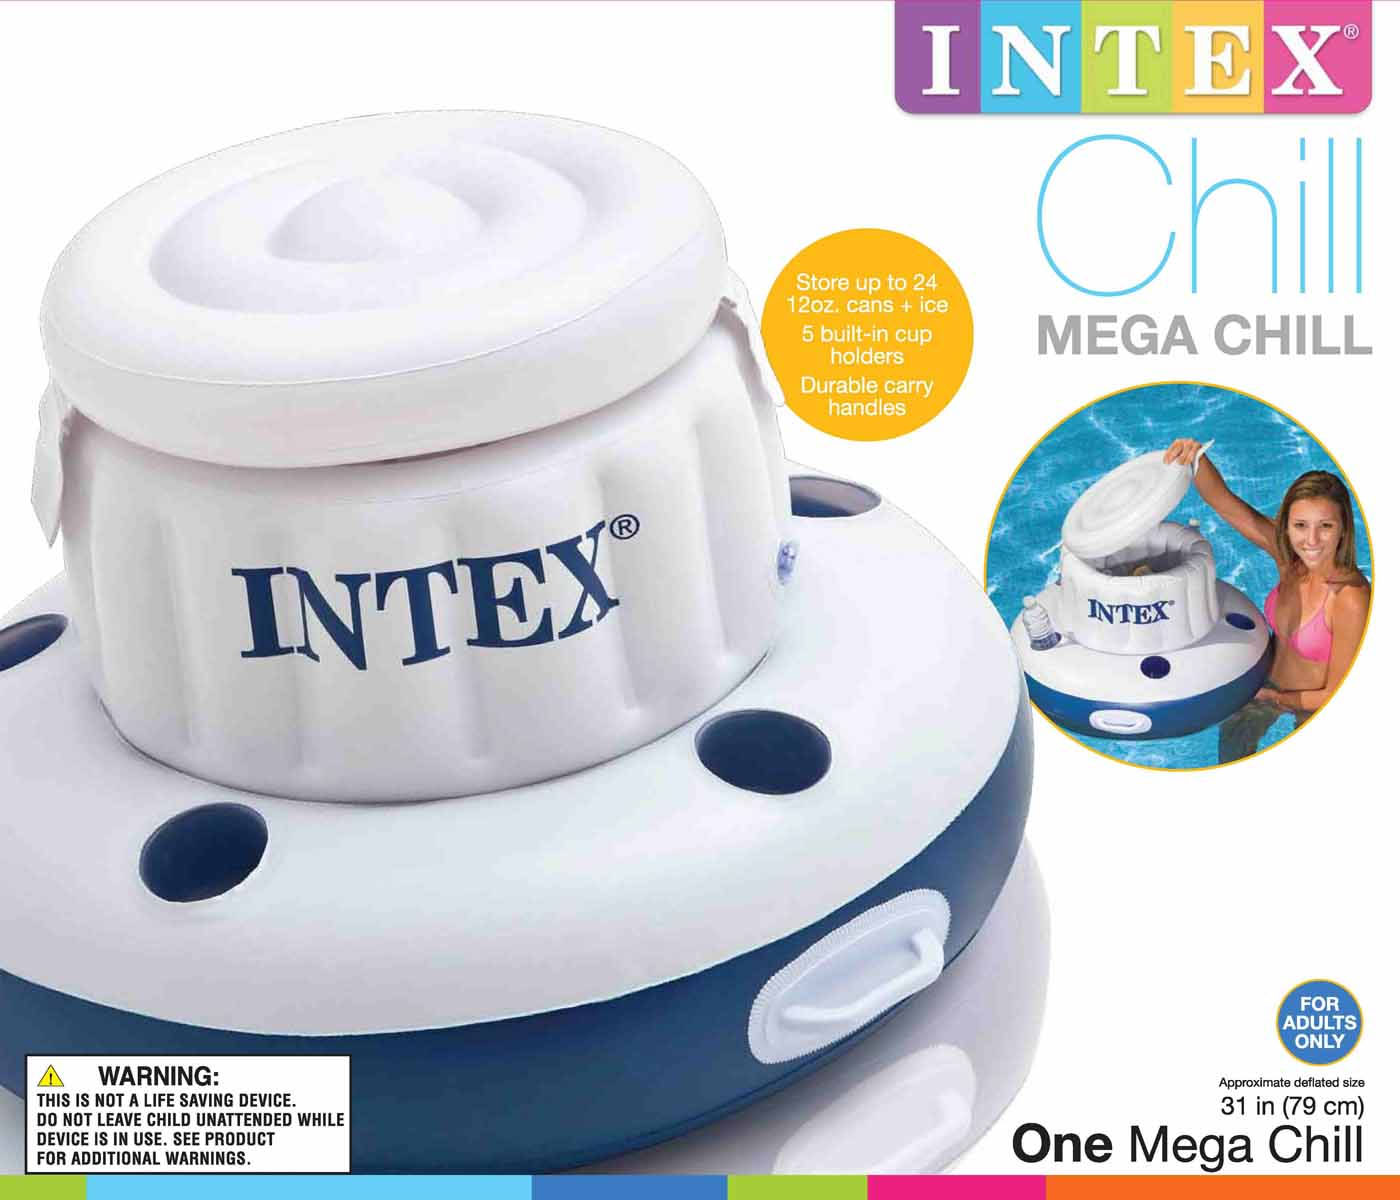 58820EP�Intex Mega Chill Inflatable Floating Beverage Cooler | 58820EP